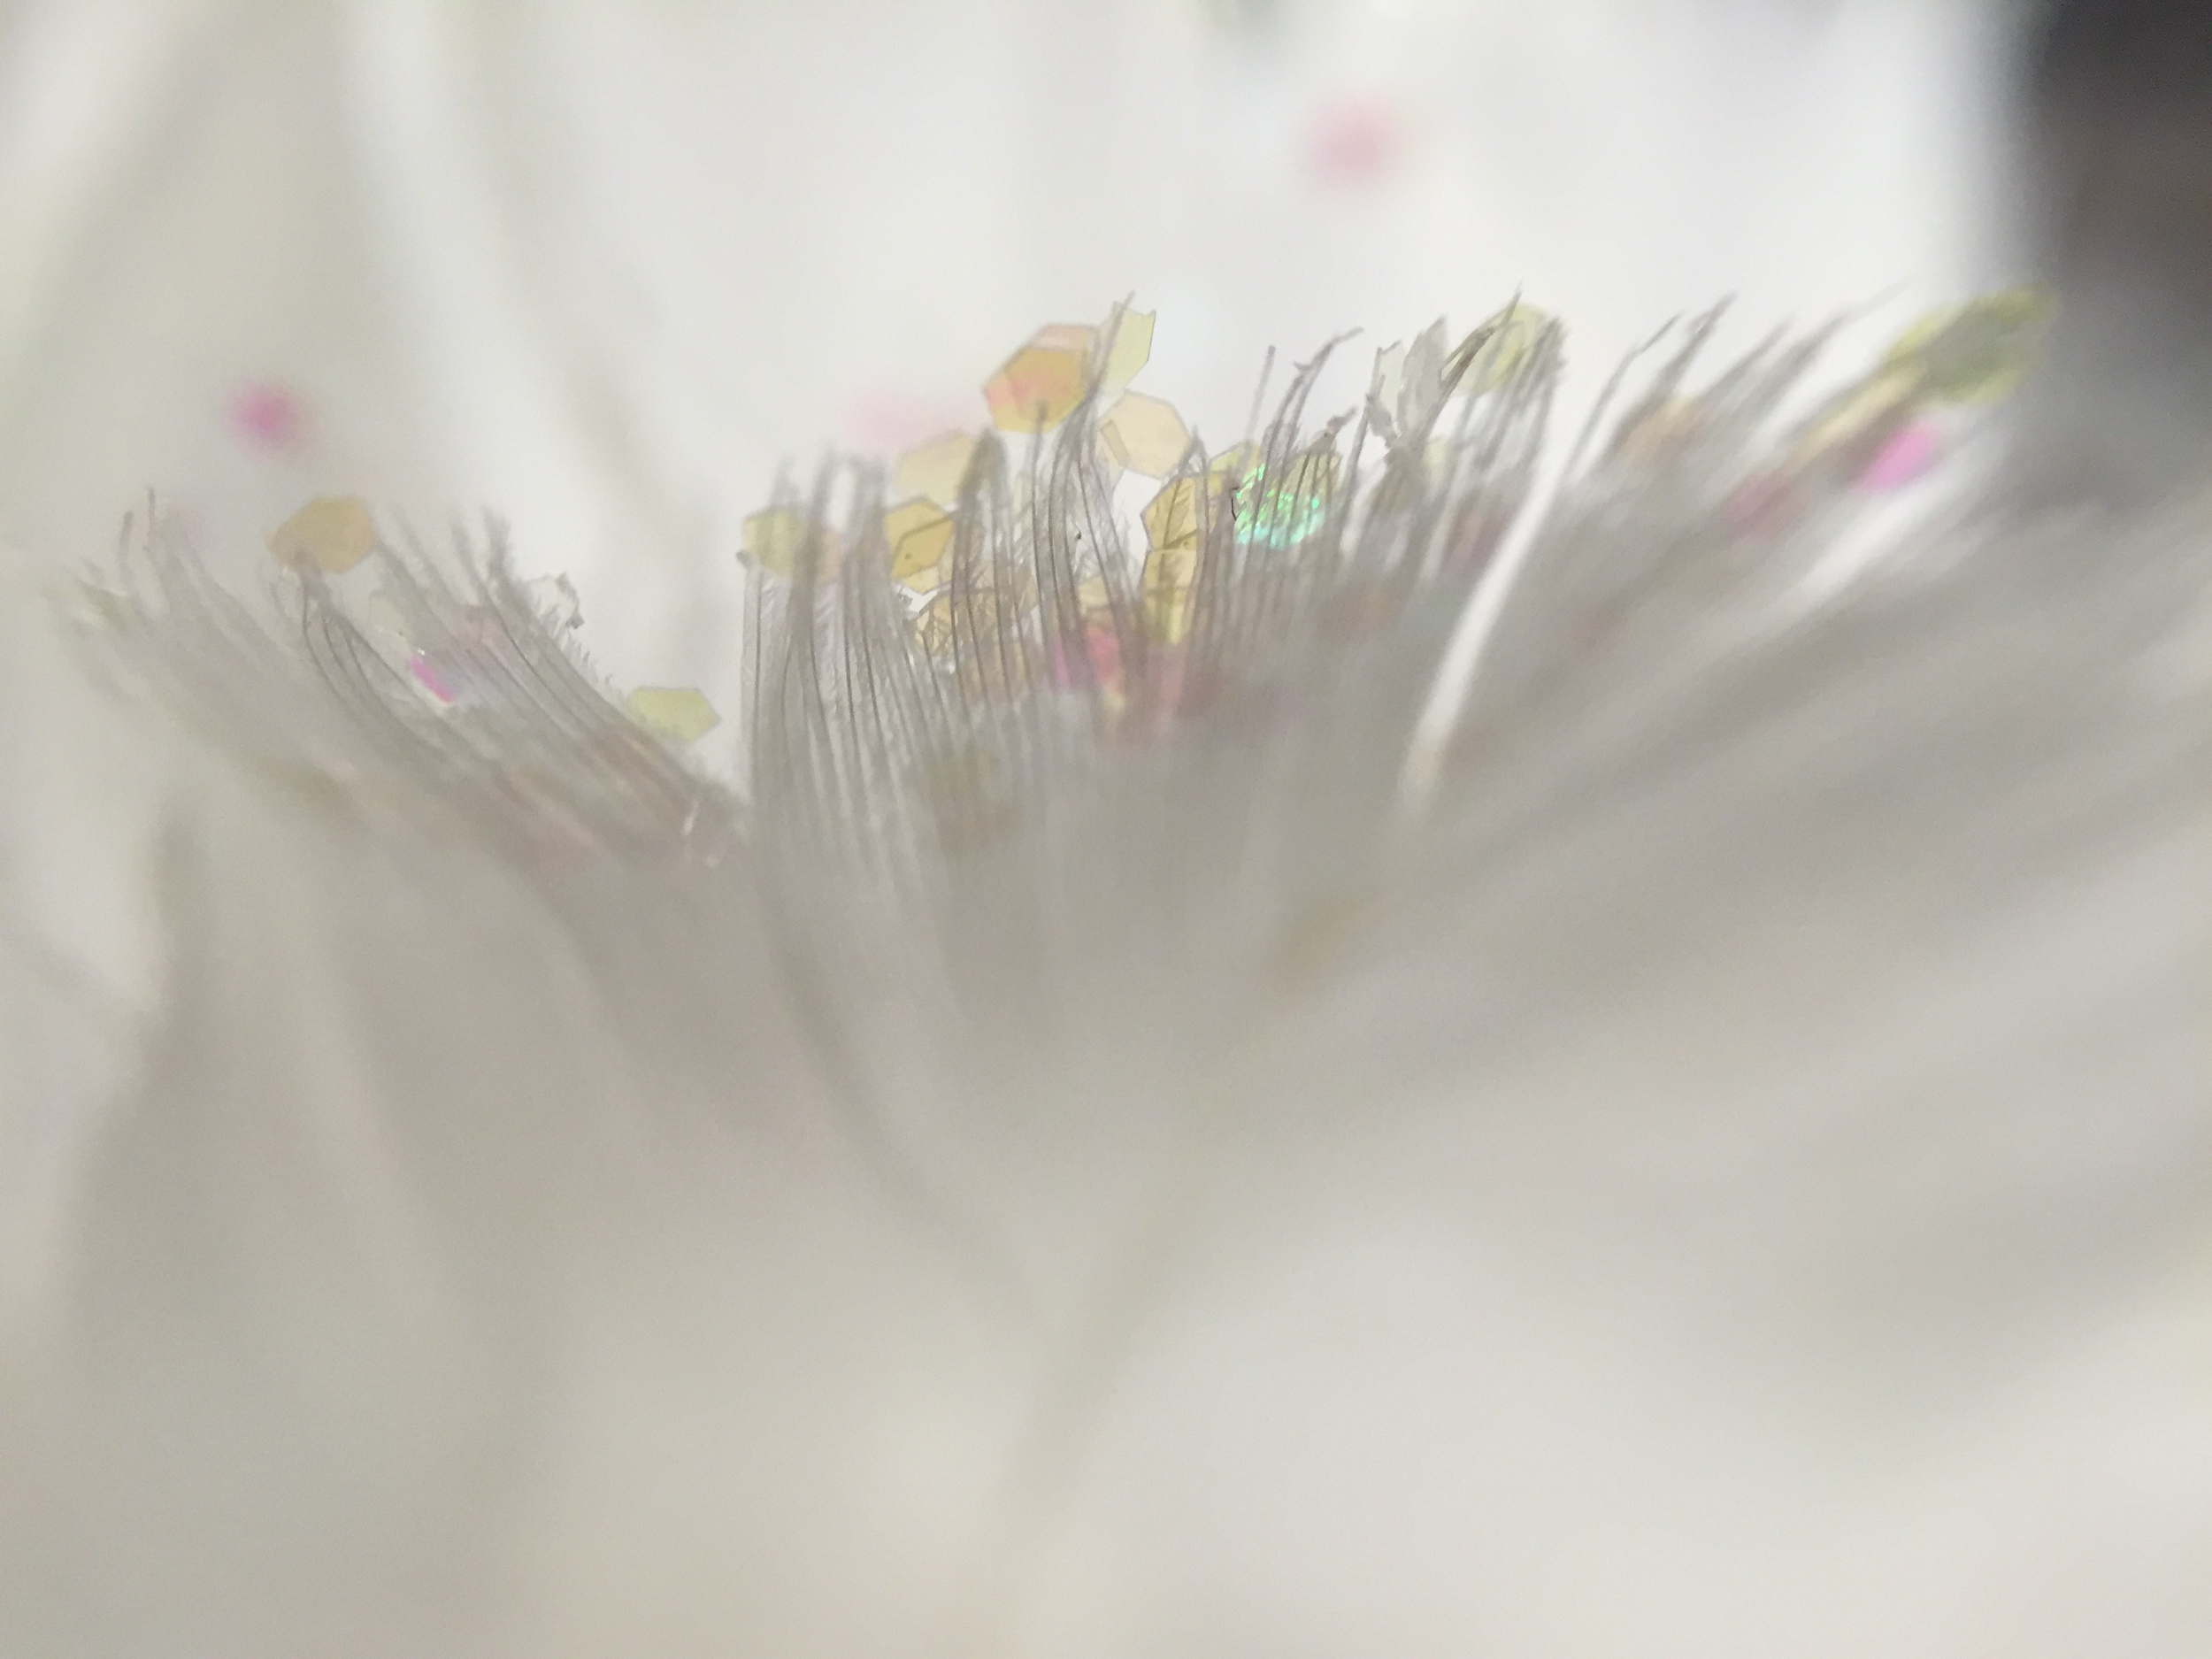 pocket lens macro image of a feather